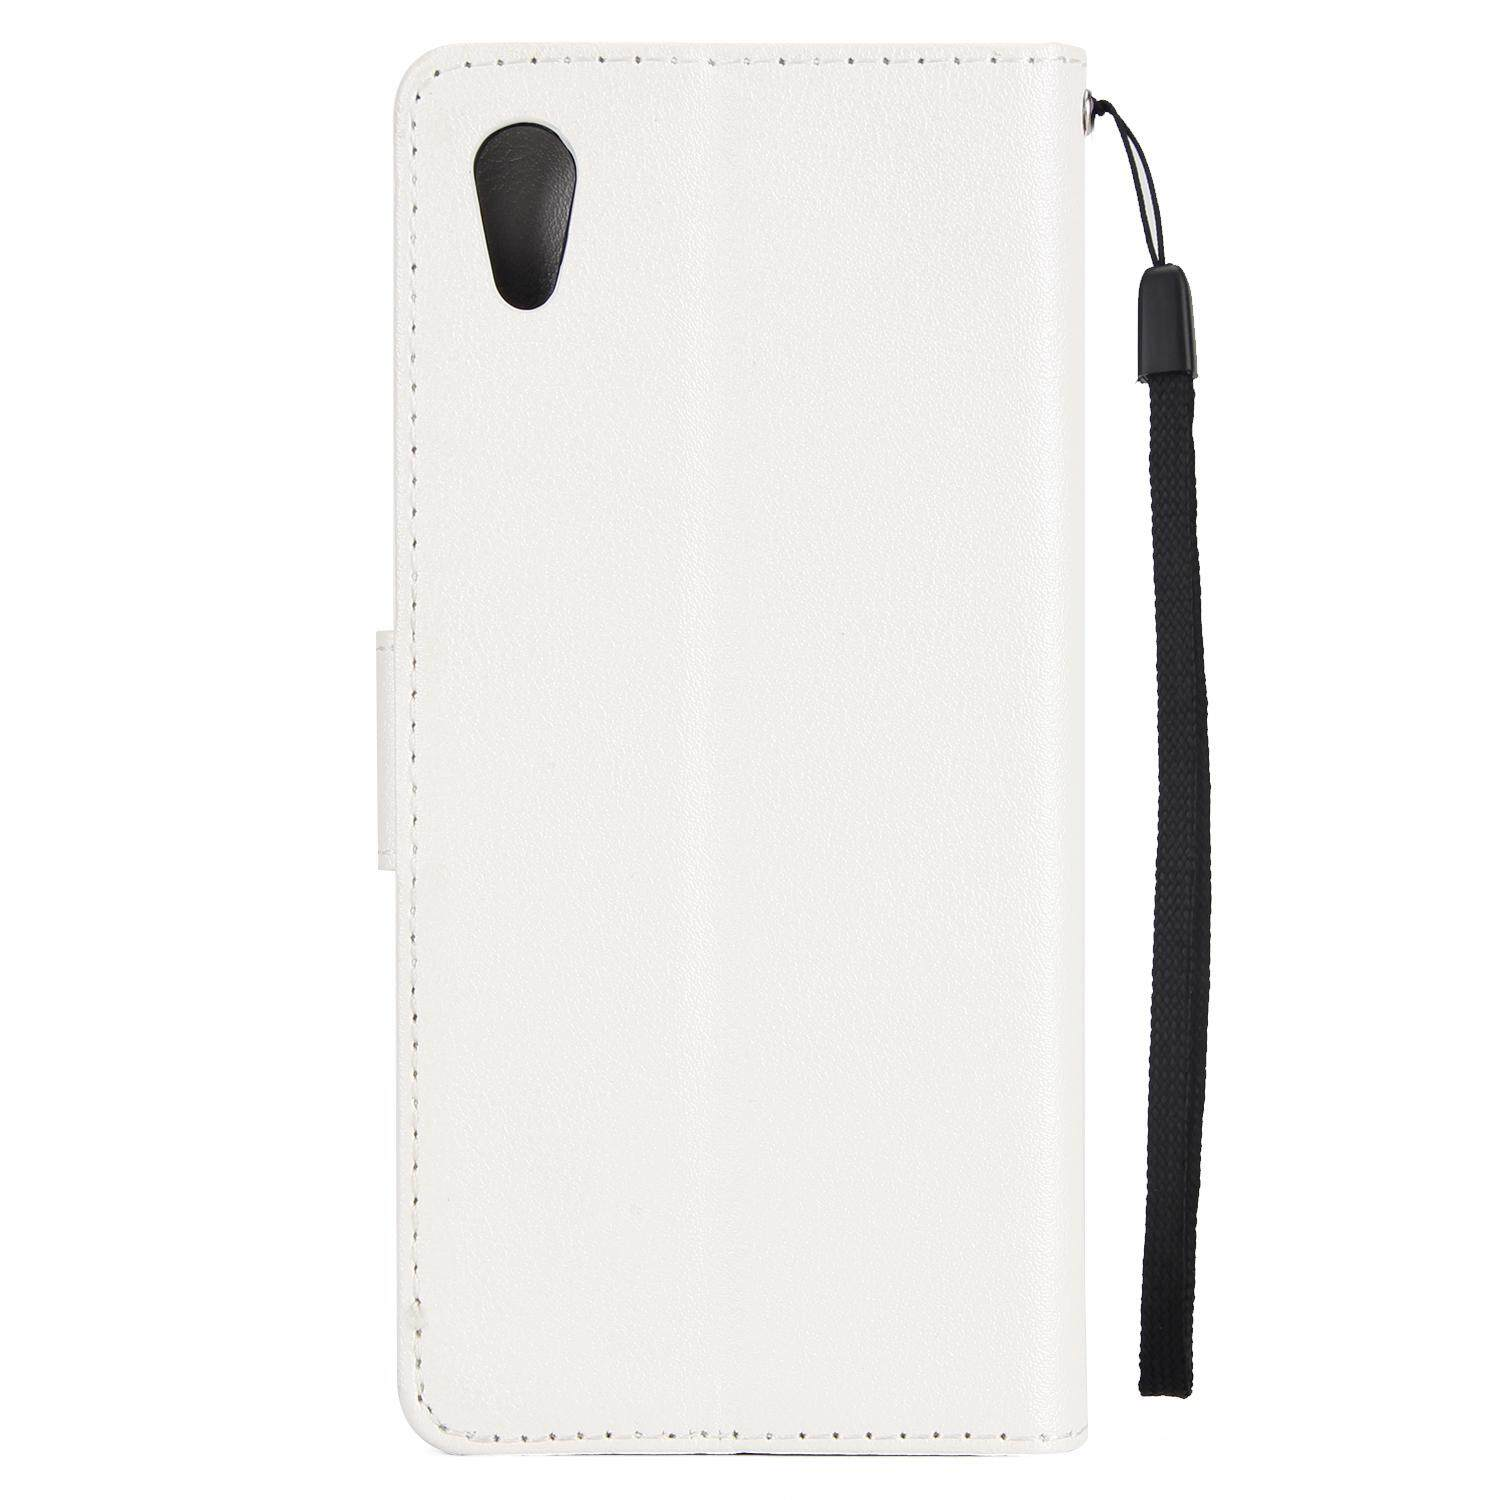 ... Case for Sony Xperia XA1 / Z6 - Classic Fashion style Wallet Flip Stand PU Leather ...